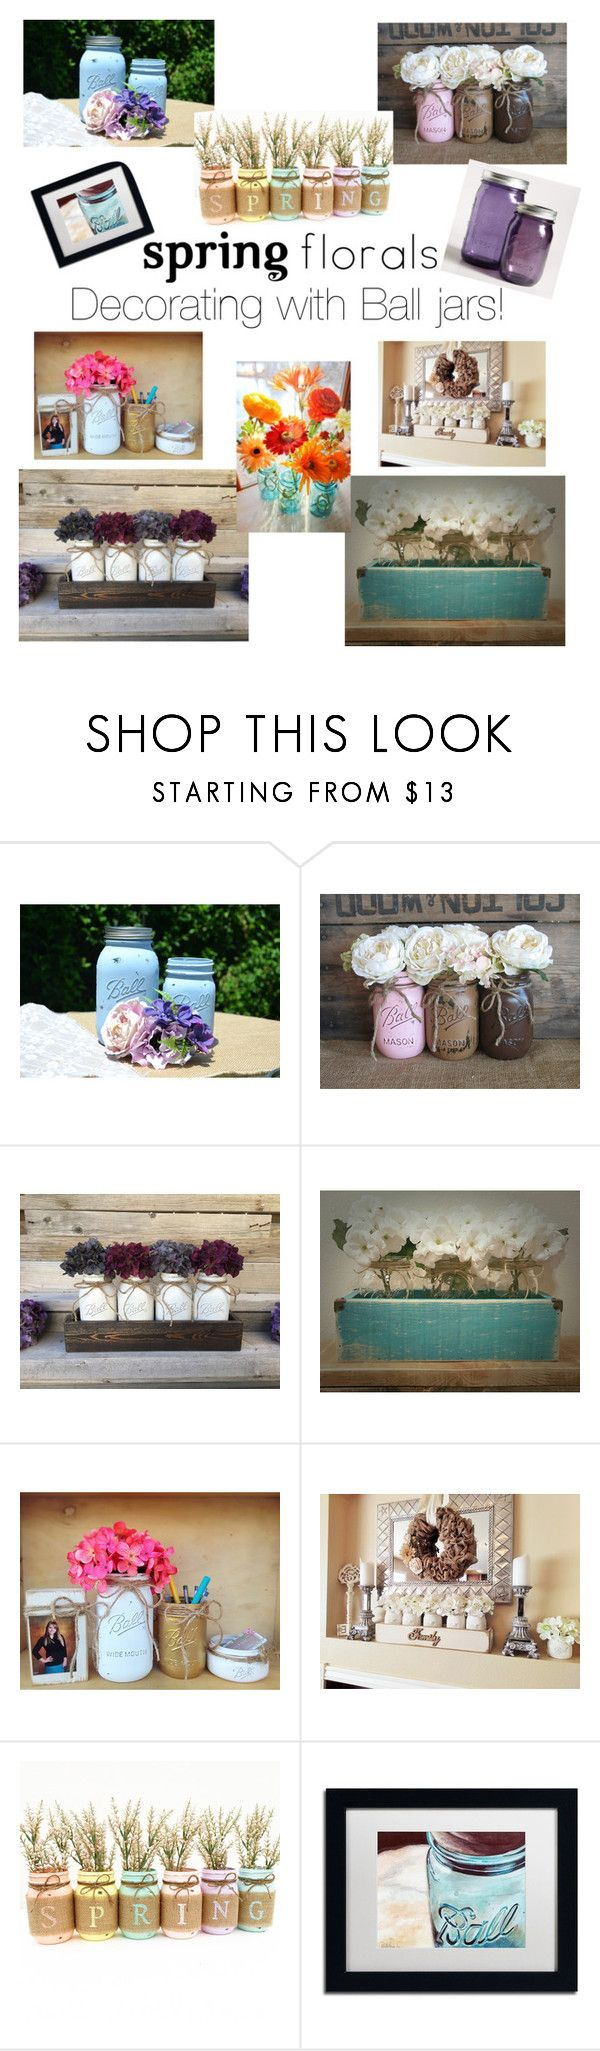 """""""Have a Ball!"""" by shawnseepk ❤ liked on Polyvore featuring interior, interiors, interior design, home, home decor, interior decorating, Trademark Fine Art, Cost Plus World Market and springflorals"""